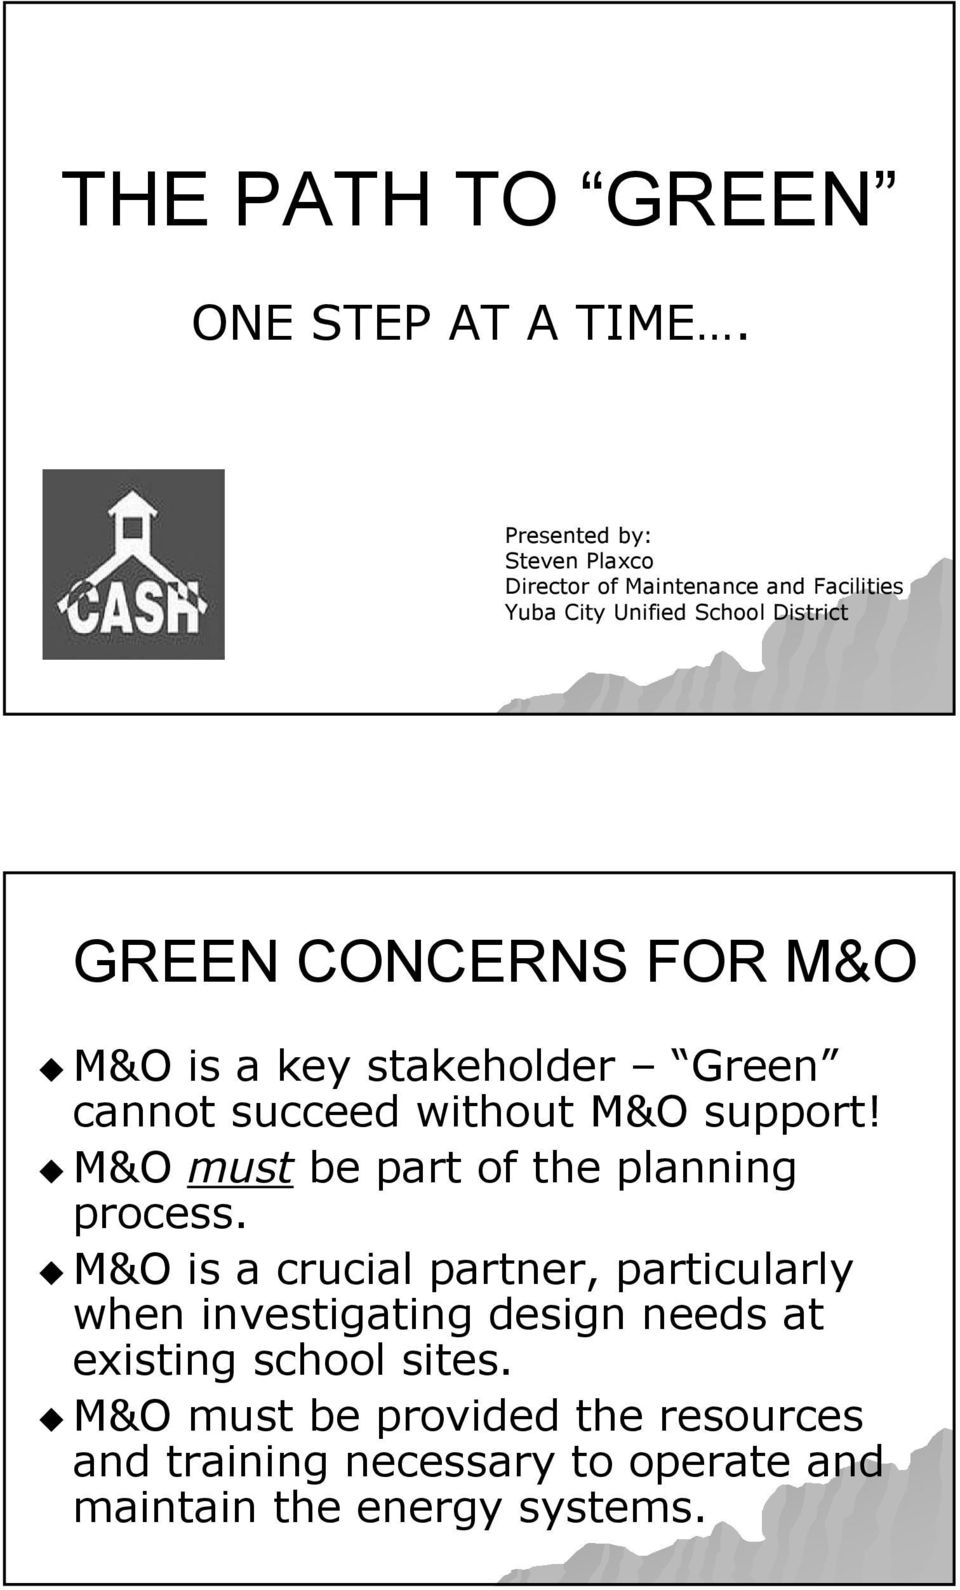 FOR M&O M&O is a key stakeholder Green cannot succeed without M&O support! M&O must be part of the planning process.